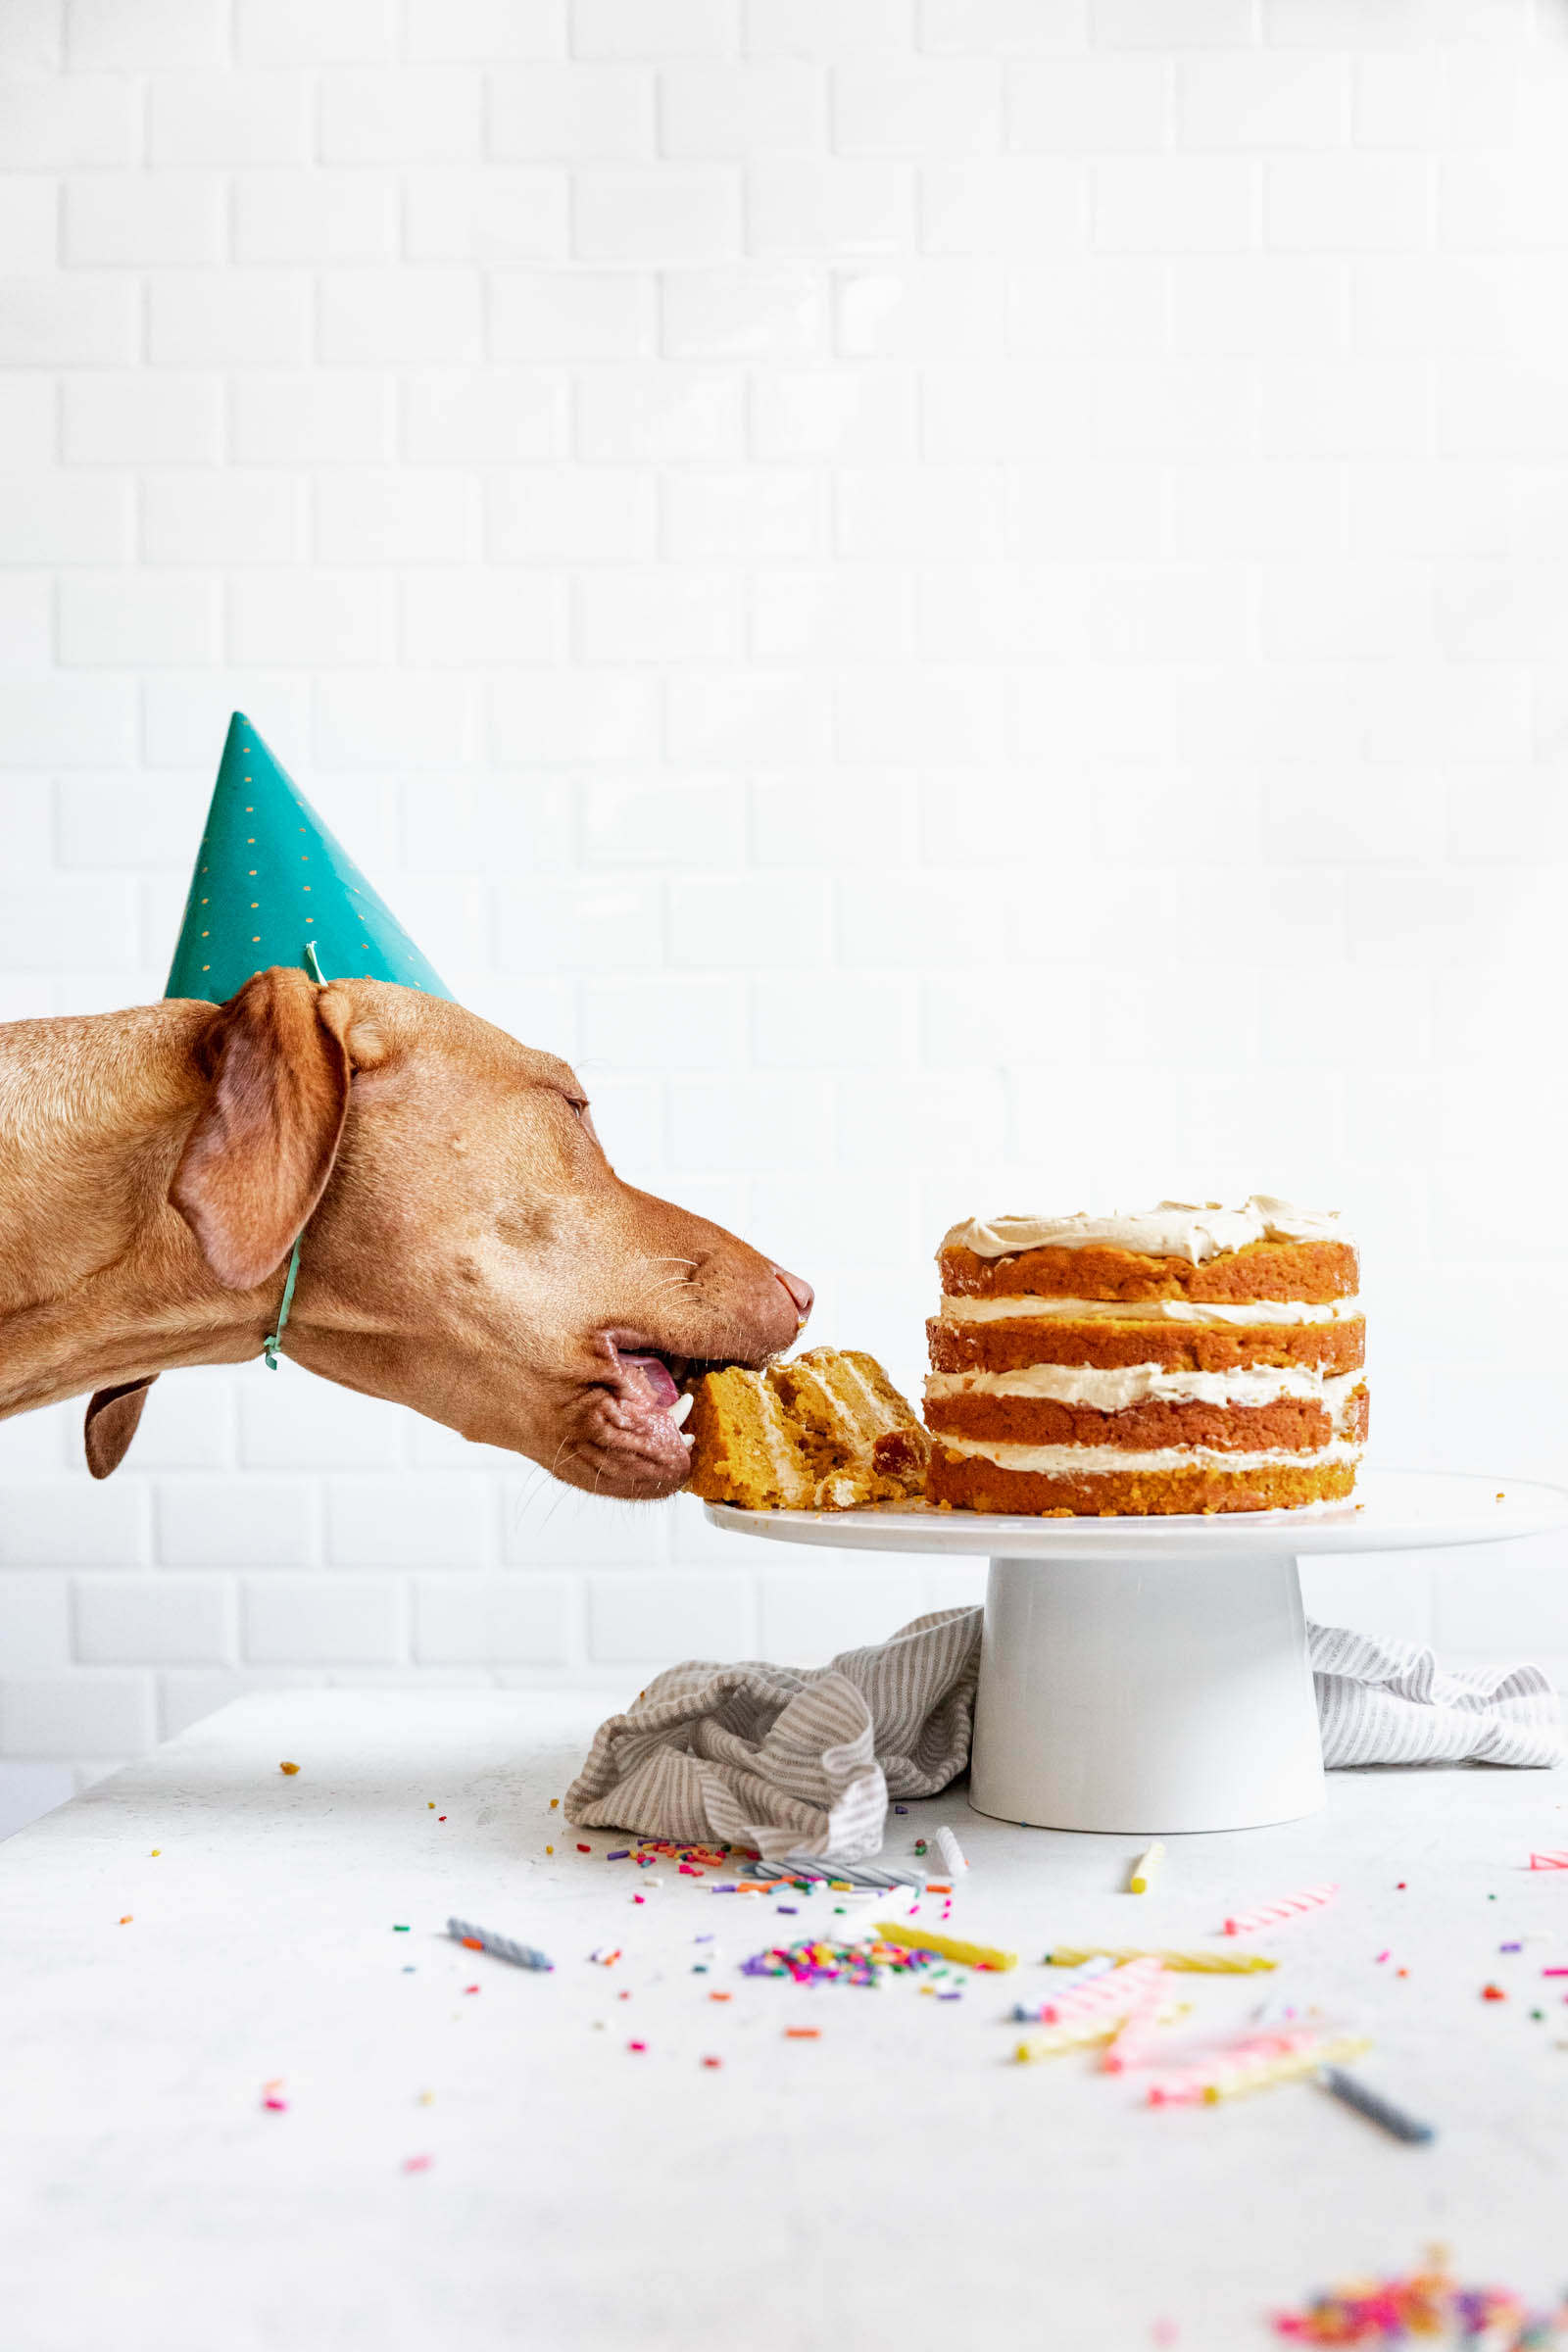 Astonishing Dog Birthday Cake Recipe How To Make Cake For Your Dog Personalised Birthday Cards Paralily Jamesorg